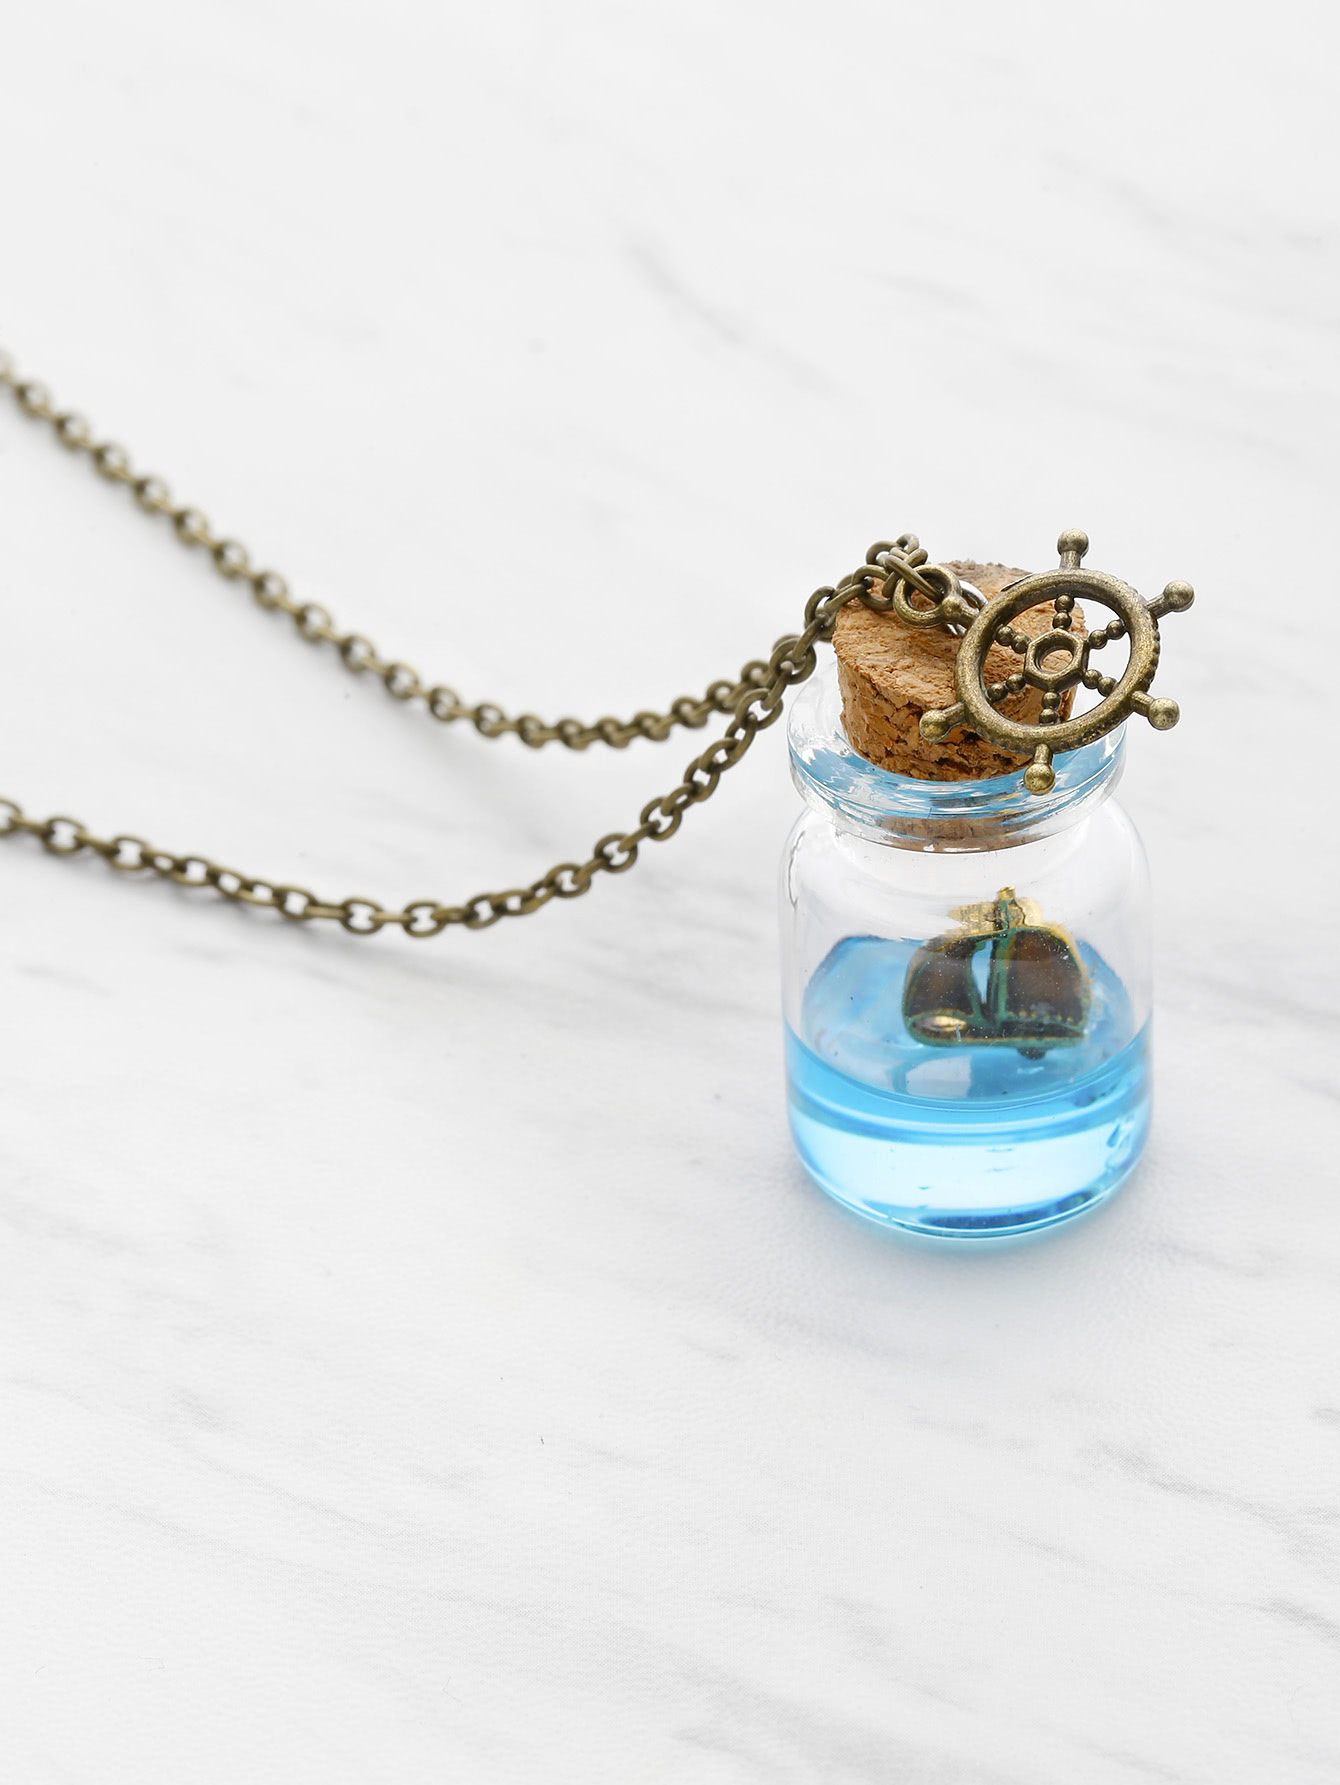 Drift Bottle Pendant Necklace